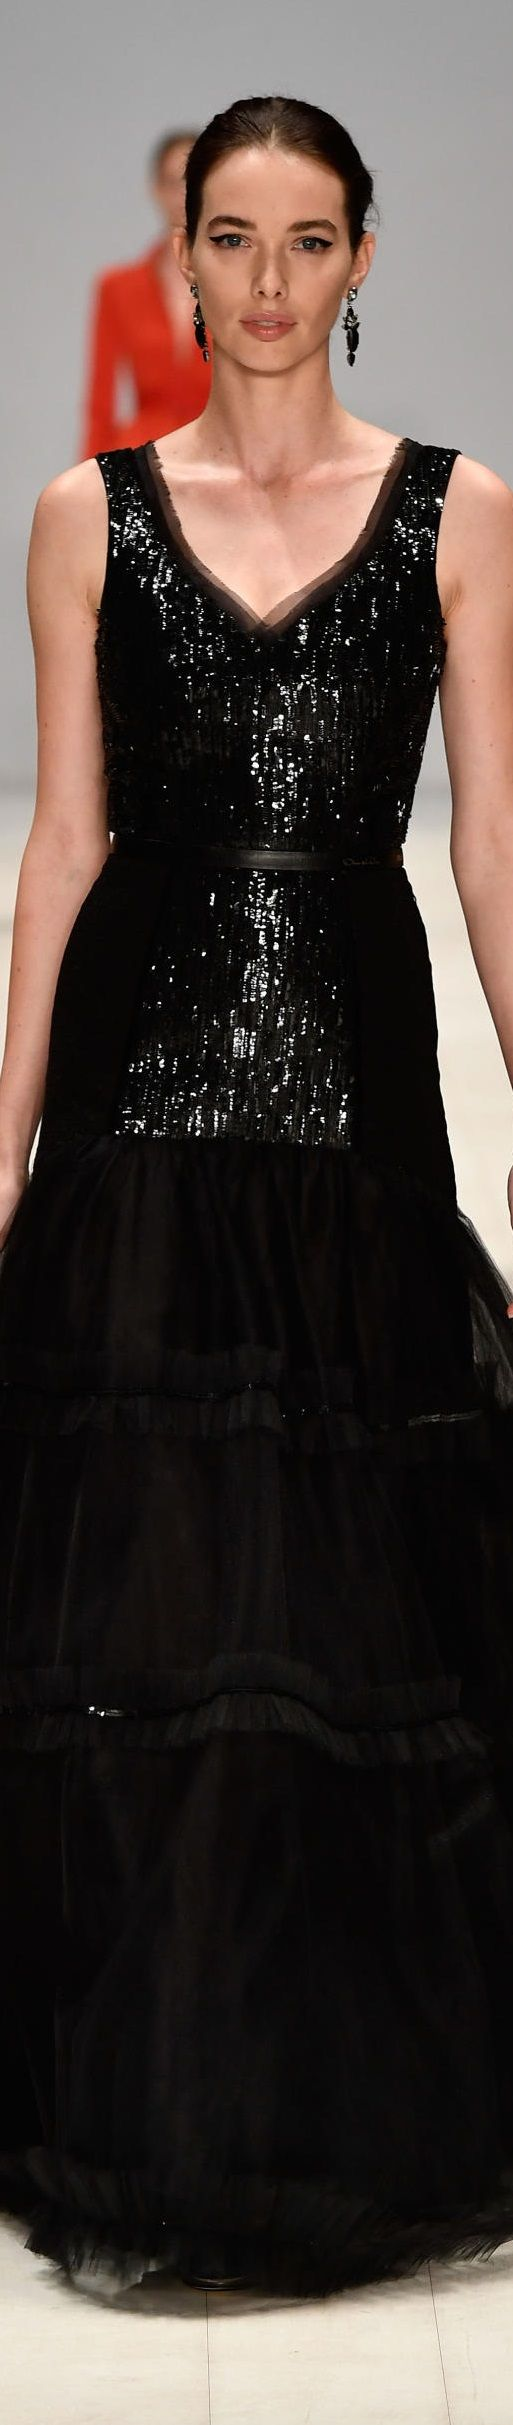 best evening dresses images on pinterest party outfits gown